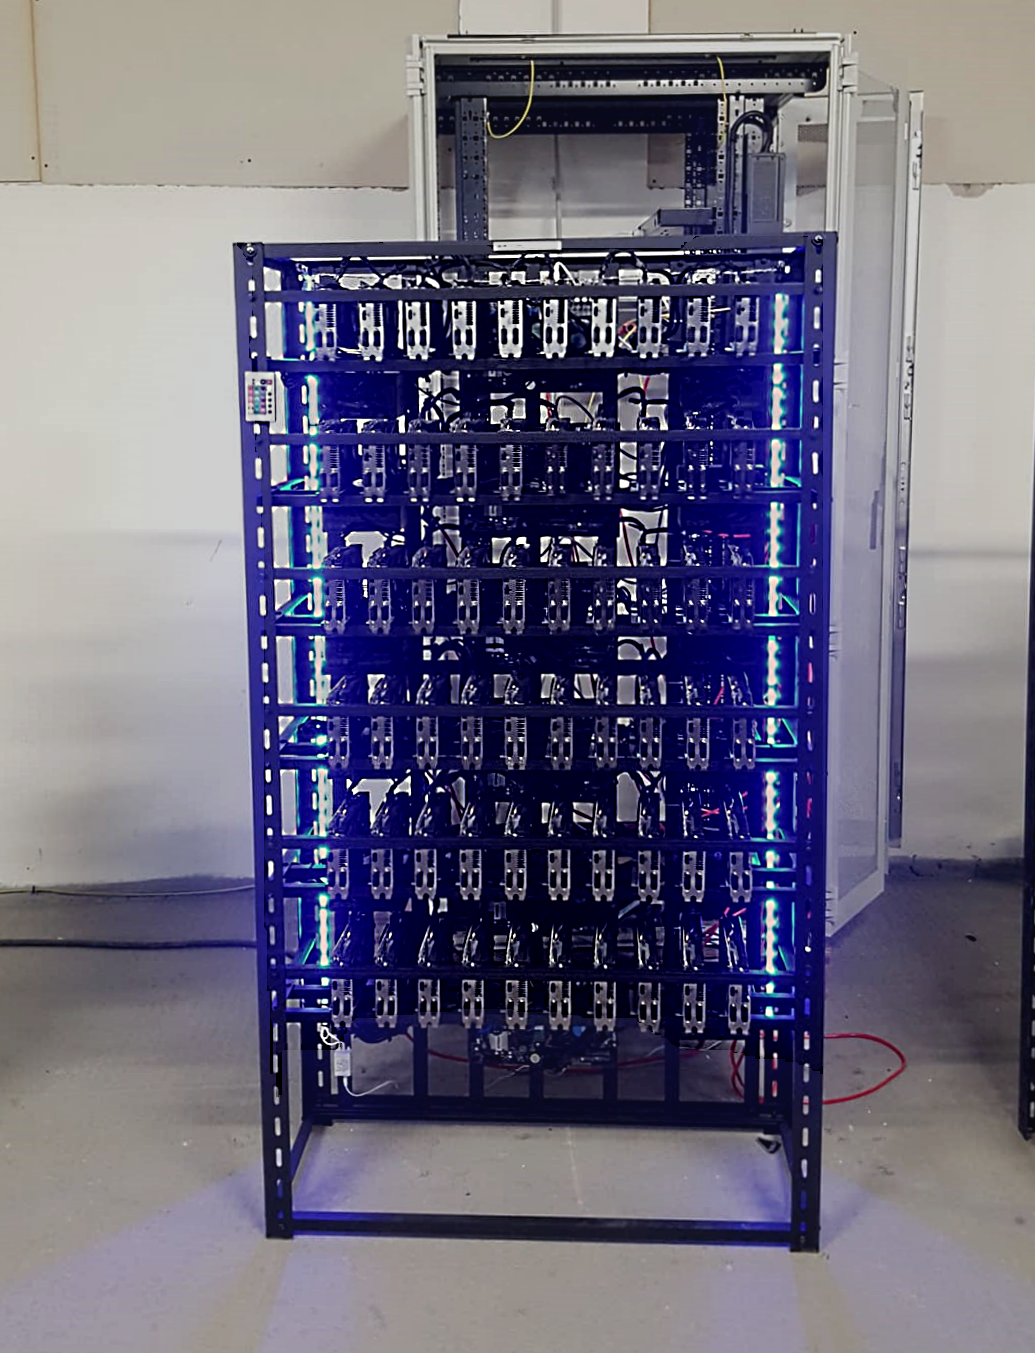 Ethereum GPU Mining Rig with 60x GPU Graphics Card - Miner for cryptocurrency mining